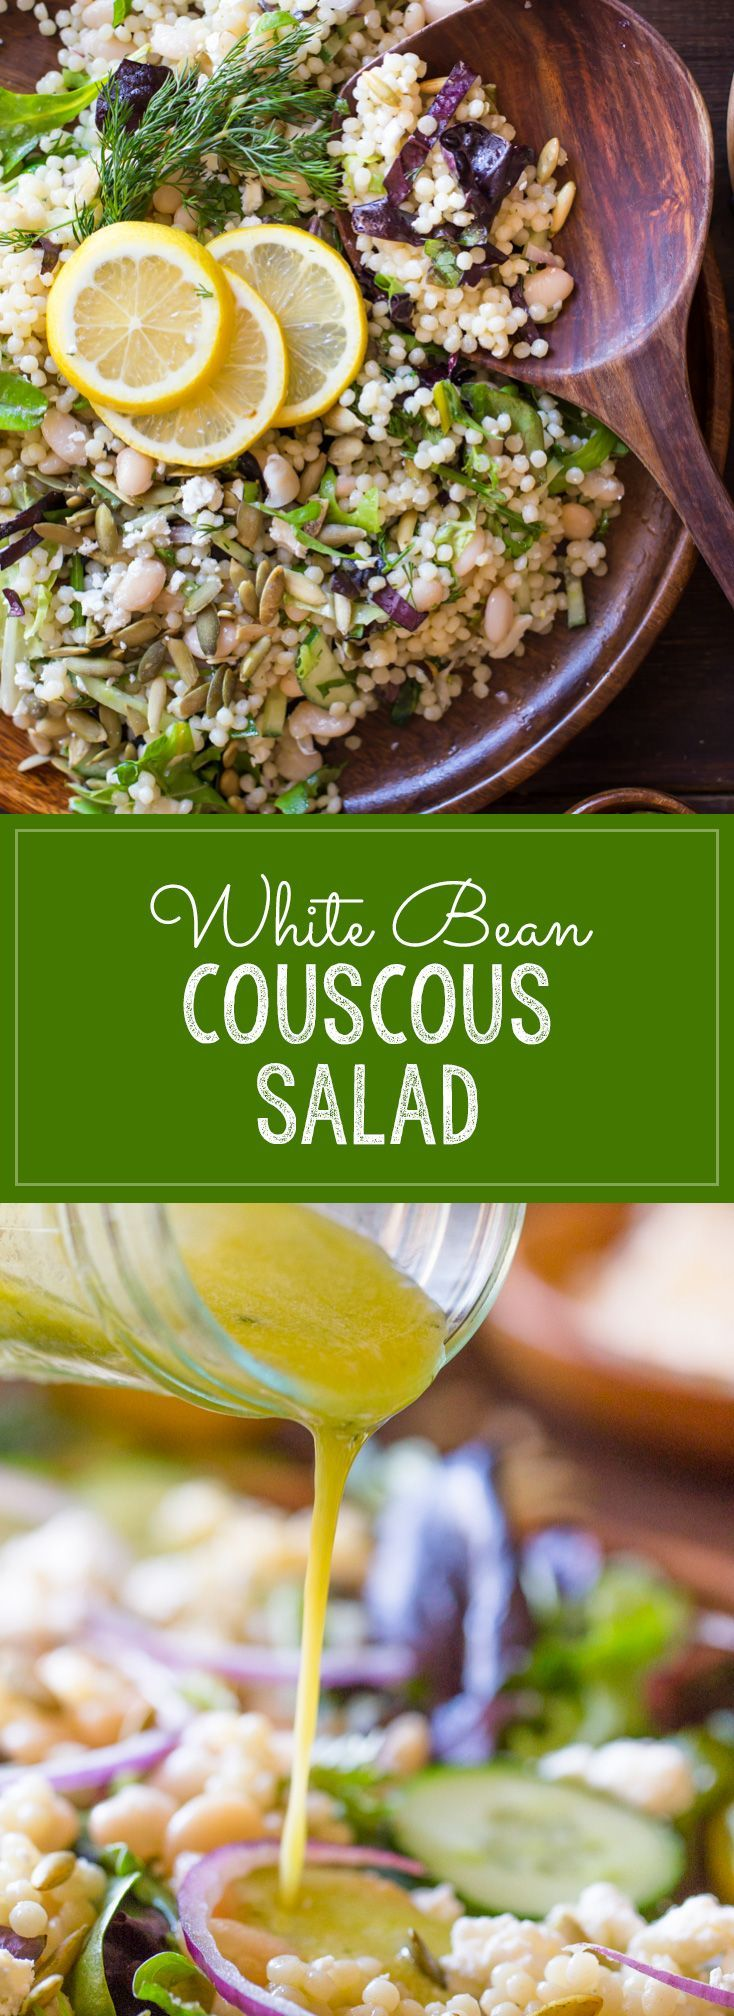 White Bean Couscous Salad With Lemon Vinaigrette - Baby greens, Israeli couscous, feta, dill, white beans, cucumber and pepitas make this salad light, fresh and healthy! | Lovely Little Kitchen